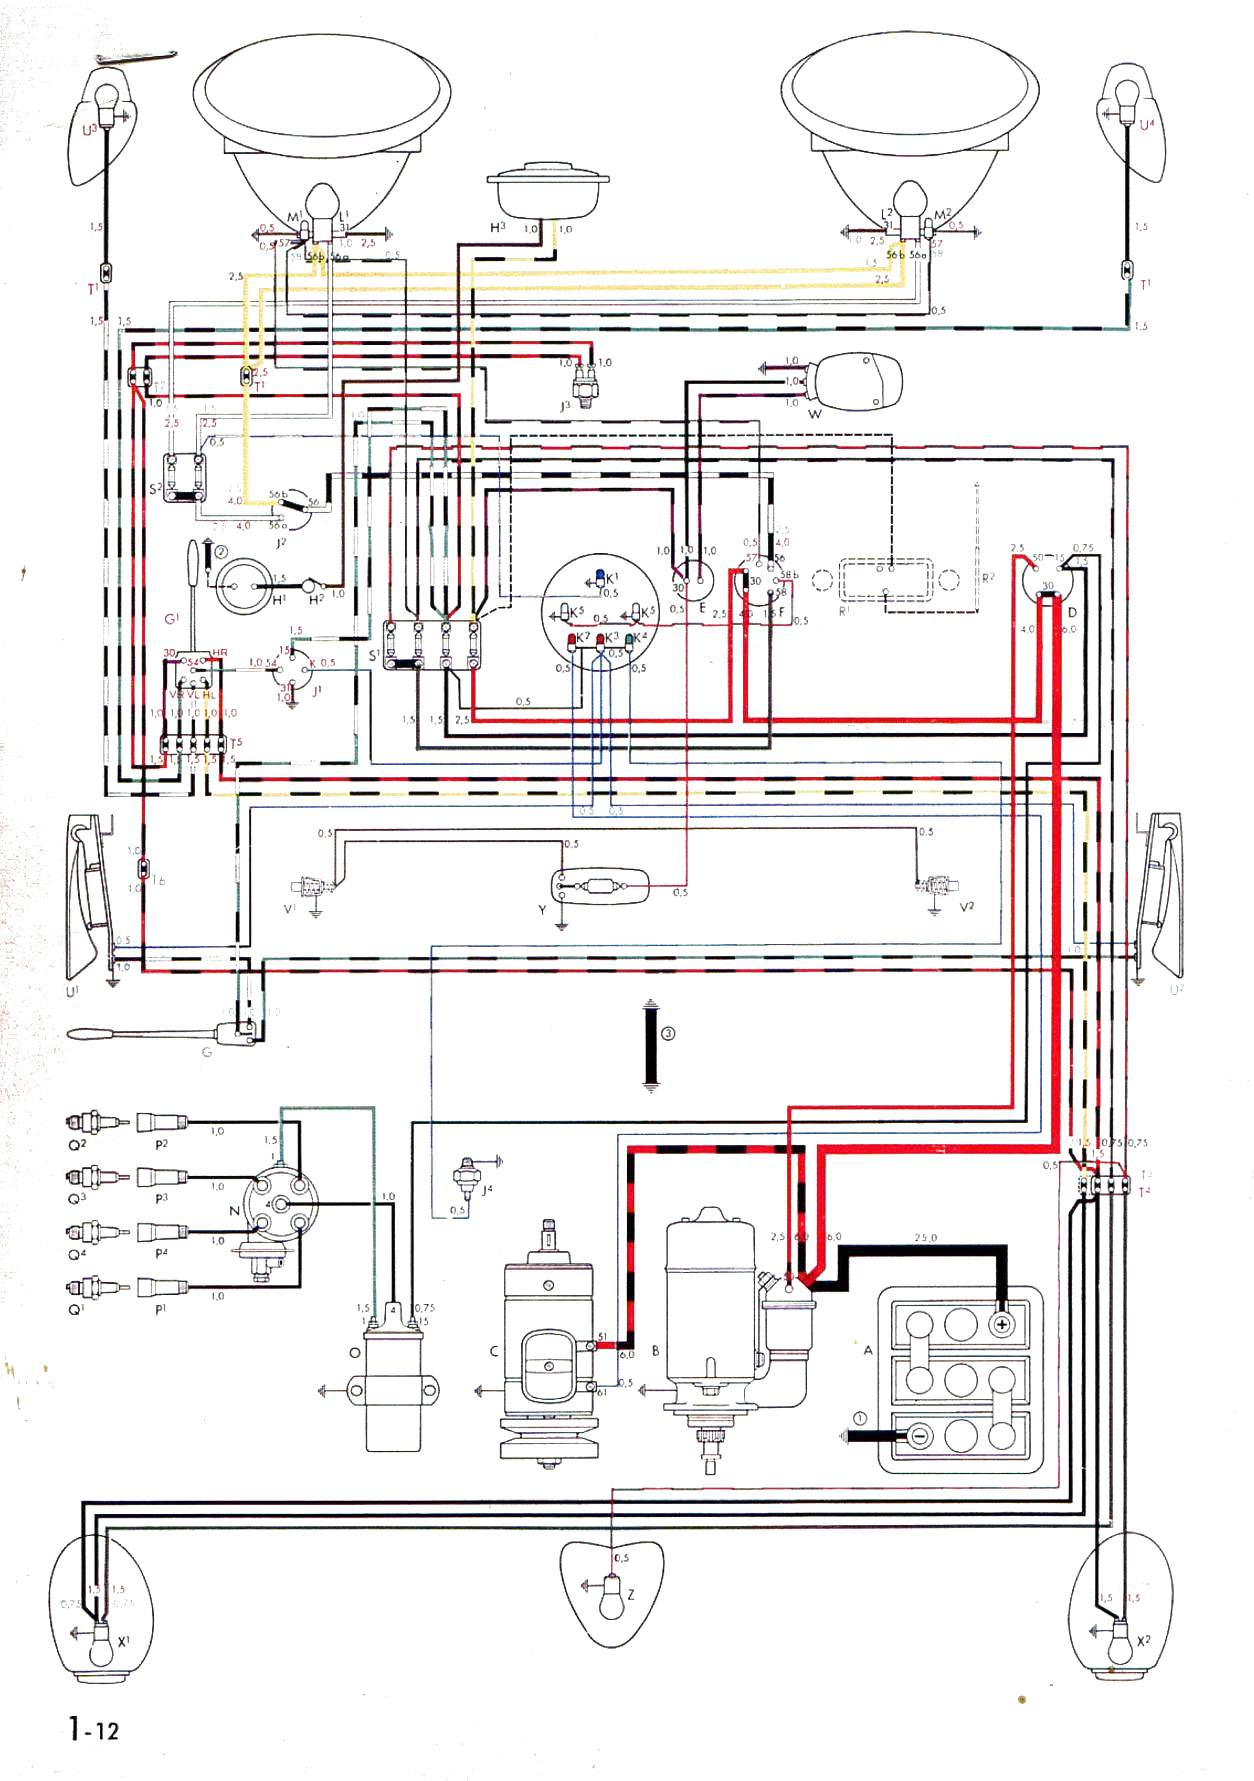 bug 55 57 vintagebus com vw bus (and other) wiring diagrams vw beetle wiring harness routing at aneh.co